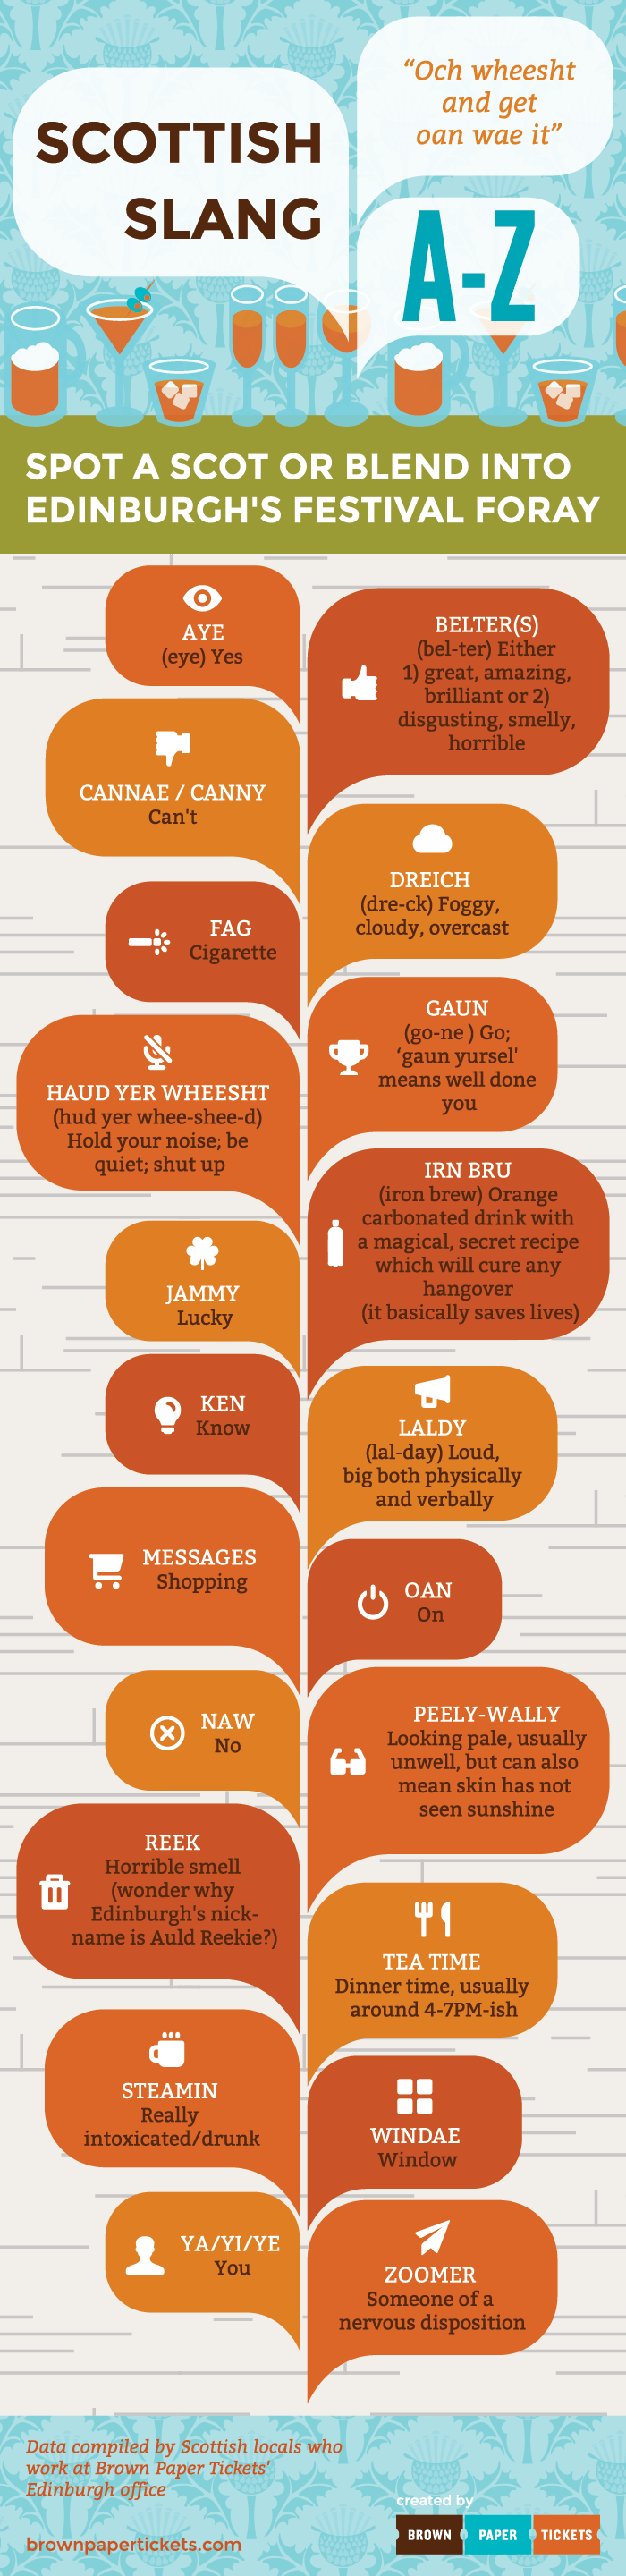 scottish-slang-infographic-SCREEN-01